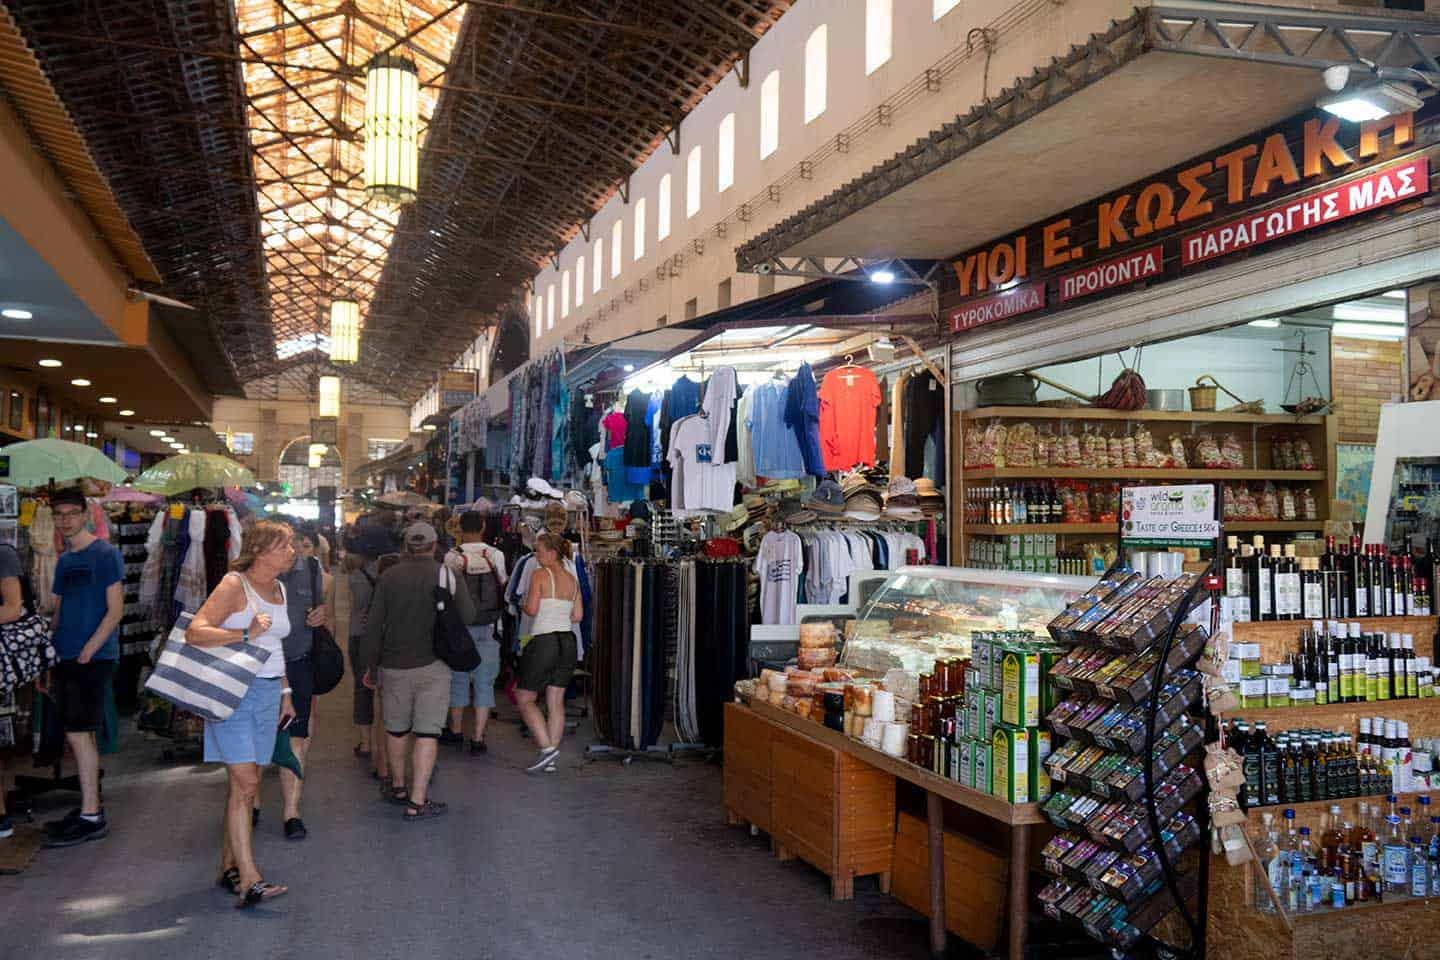 Image of the Agora Market in Chania